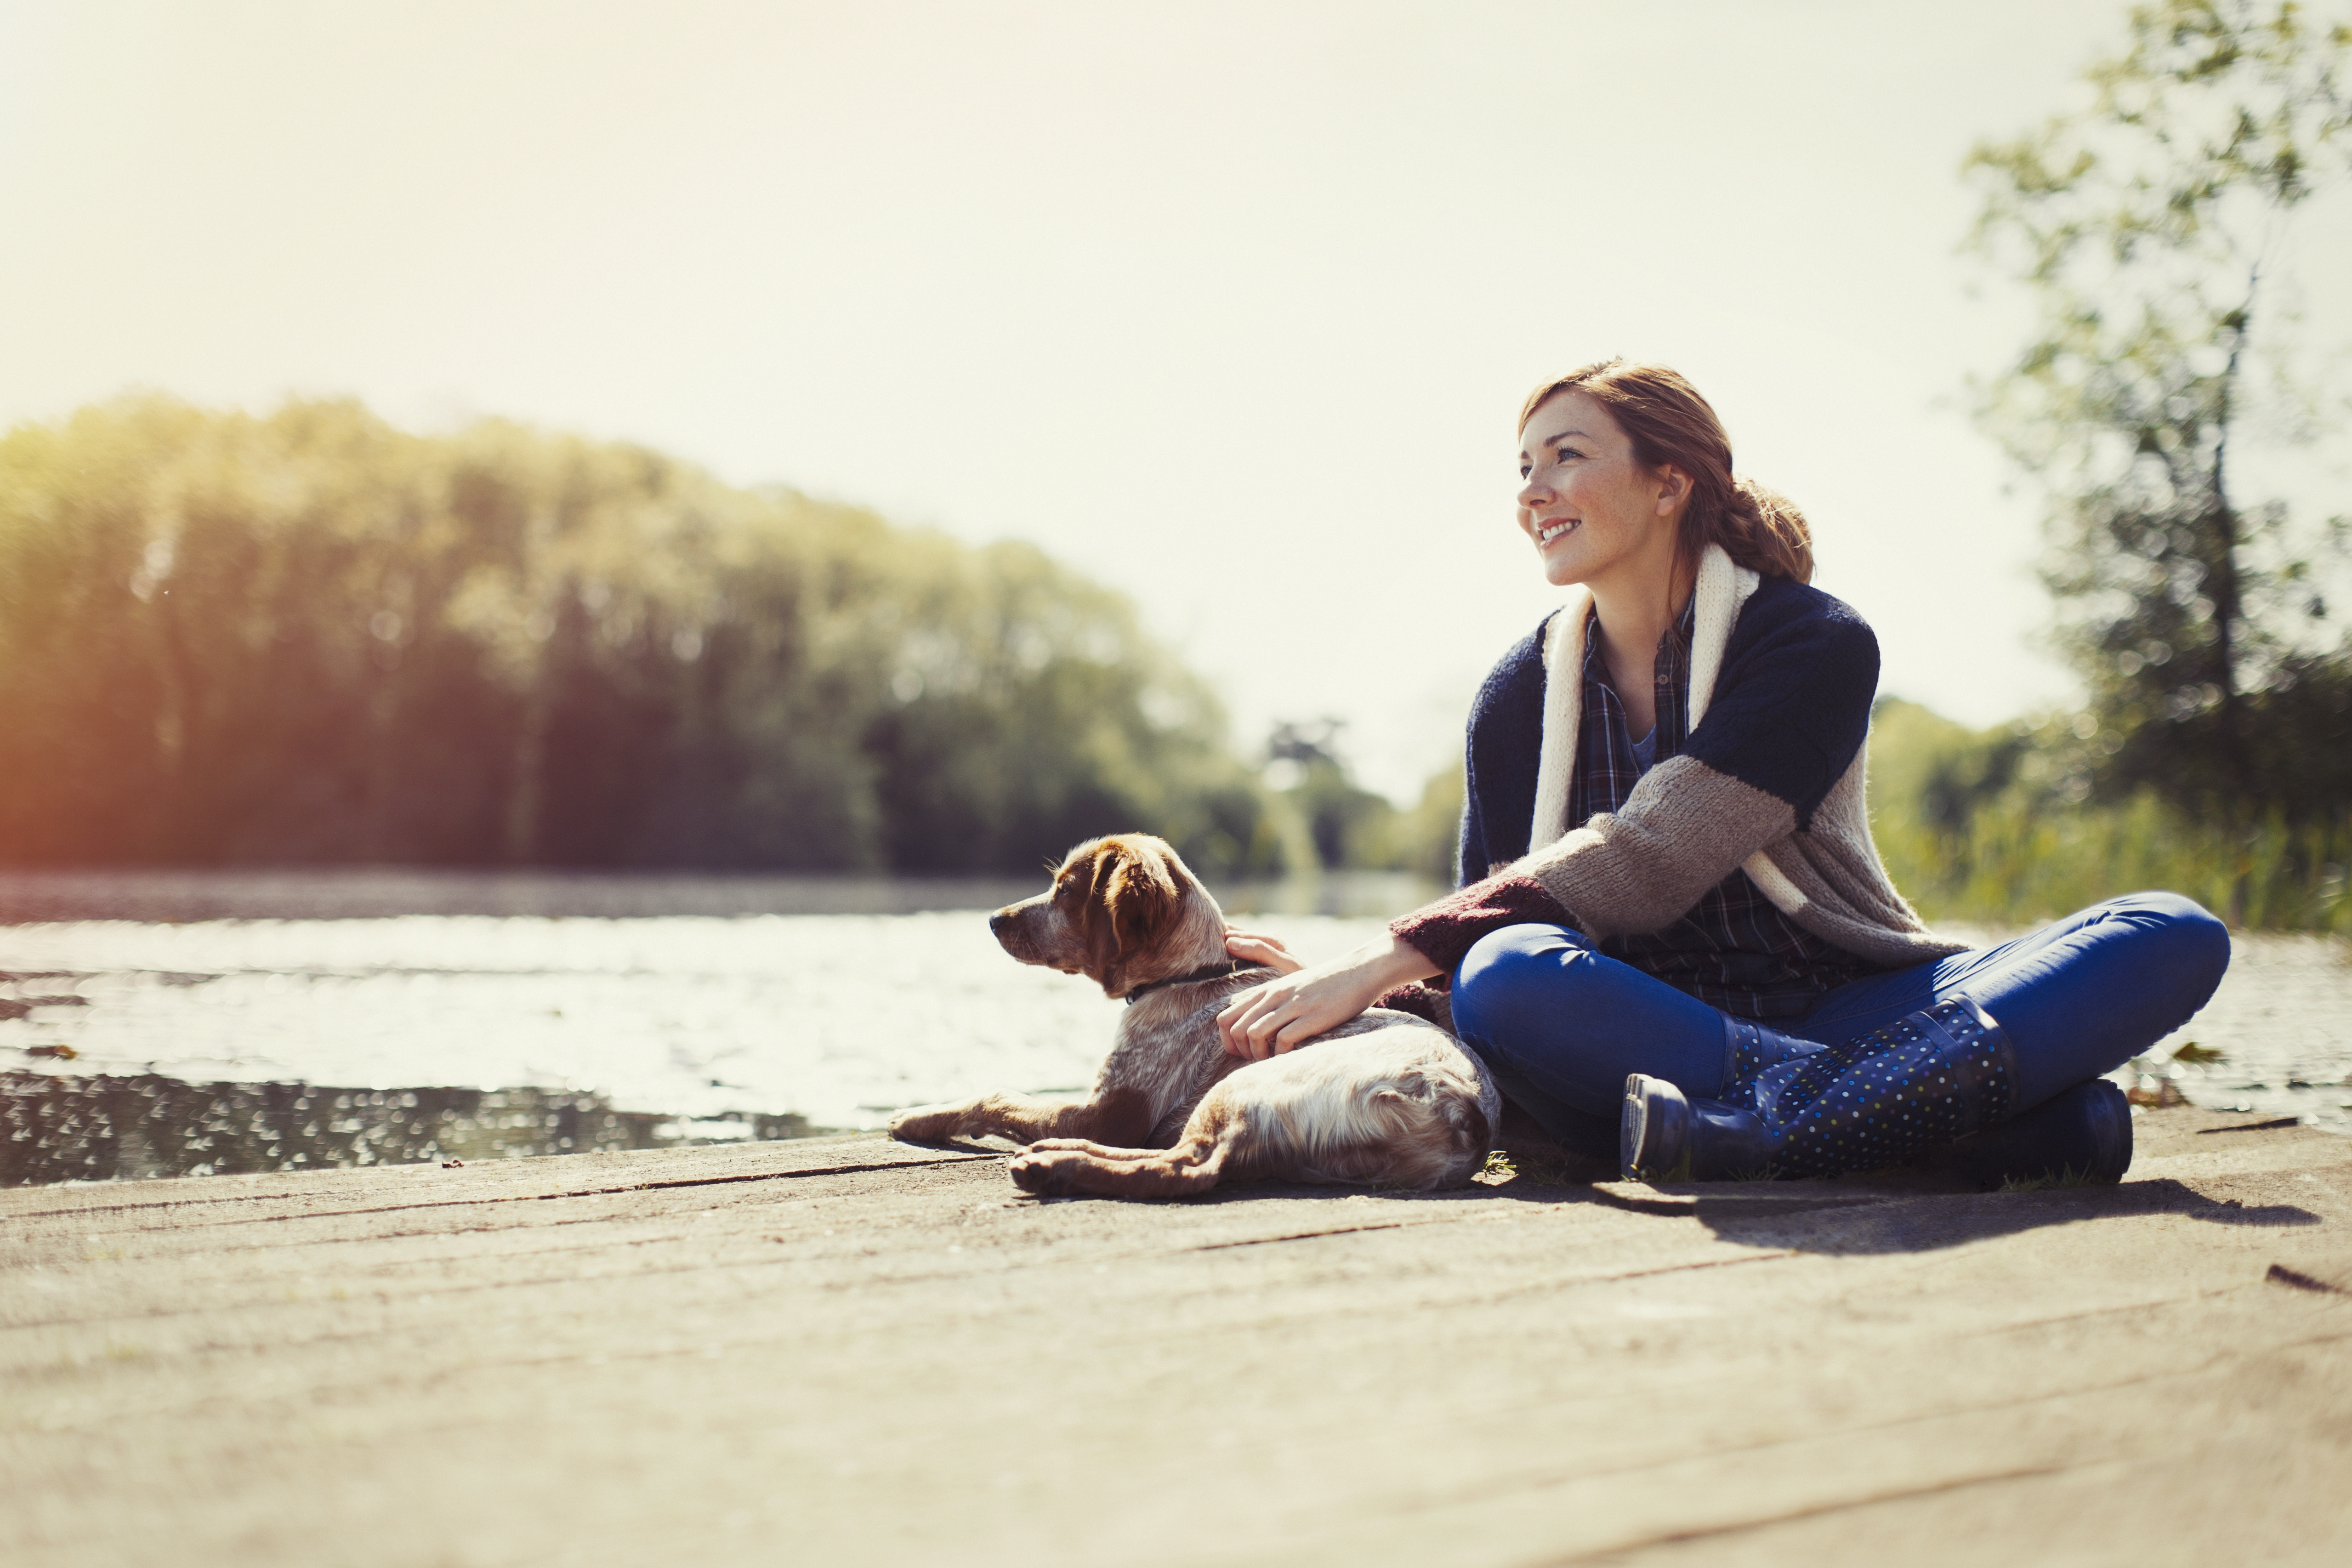 Don't Have a Hissy Fit: Study Finds Dog Owners Are Happier Than Cat Owners